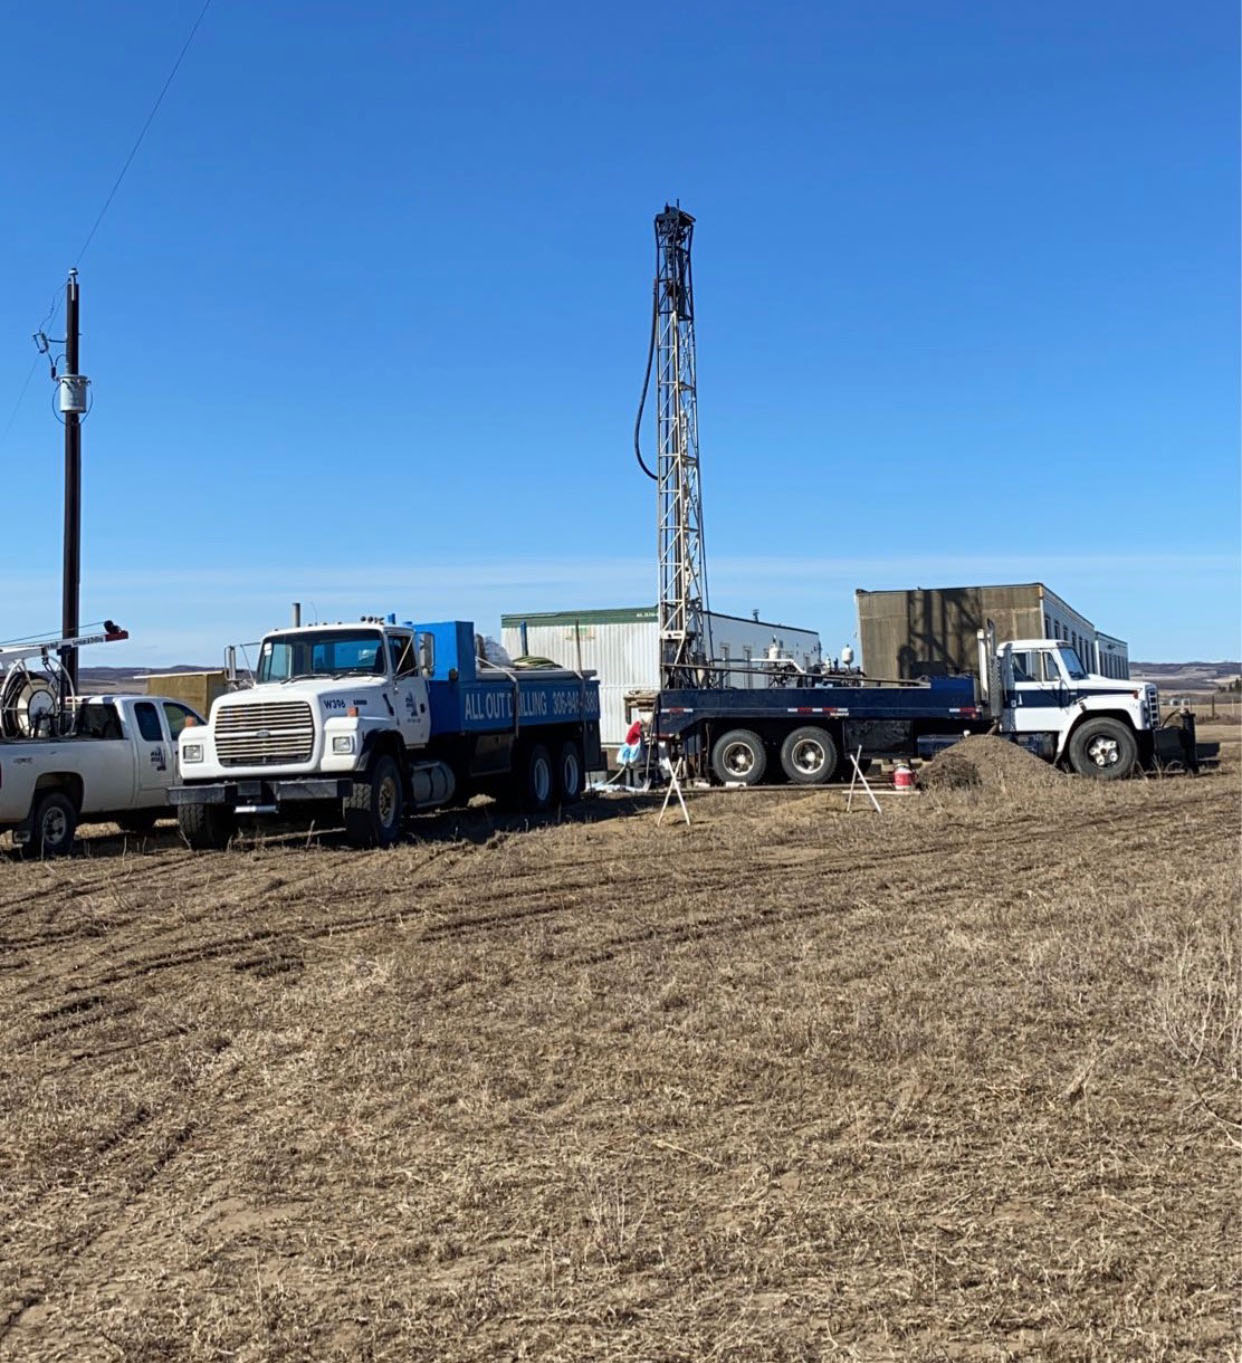 Photo of the All Out Drilling rigs decommissioning an old well in Lloydminster, Saskatchewan